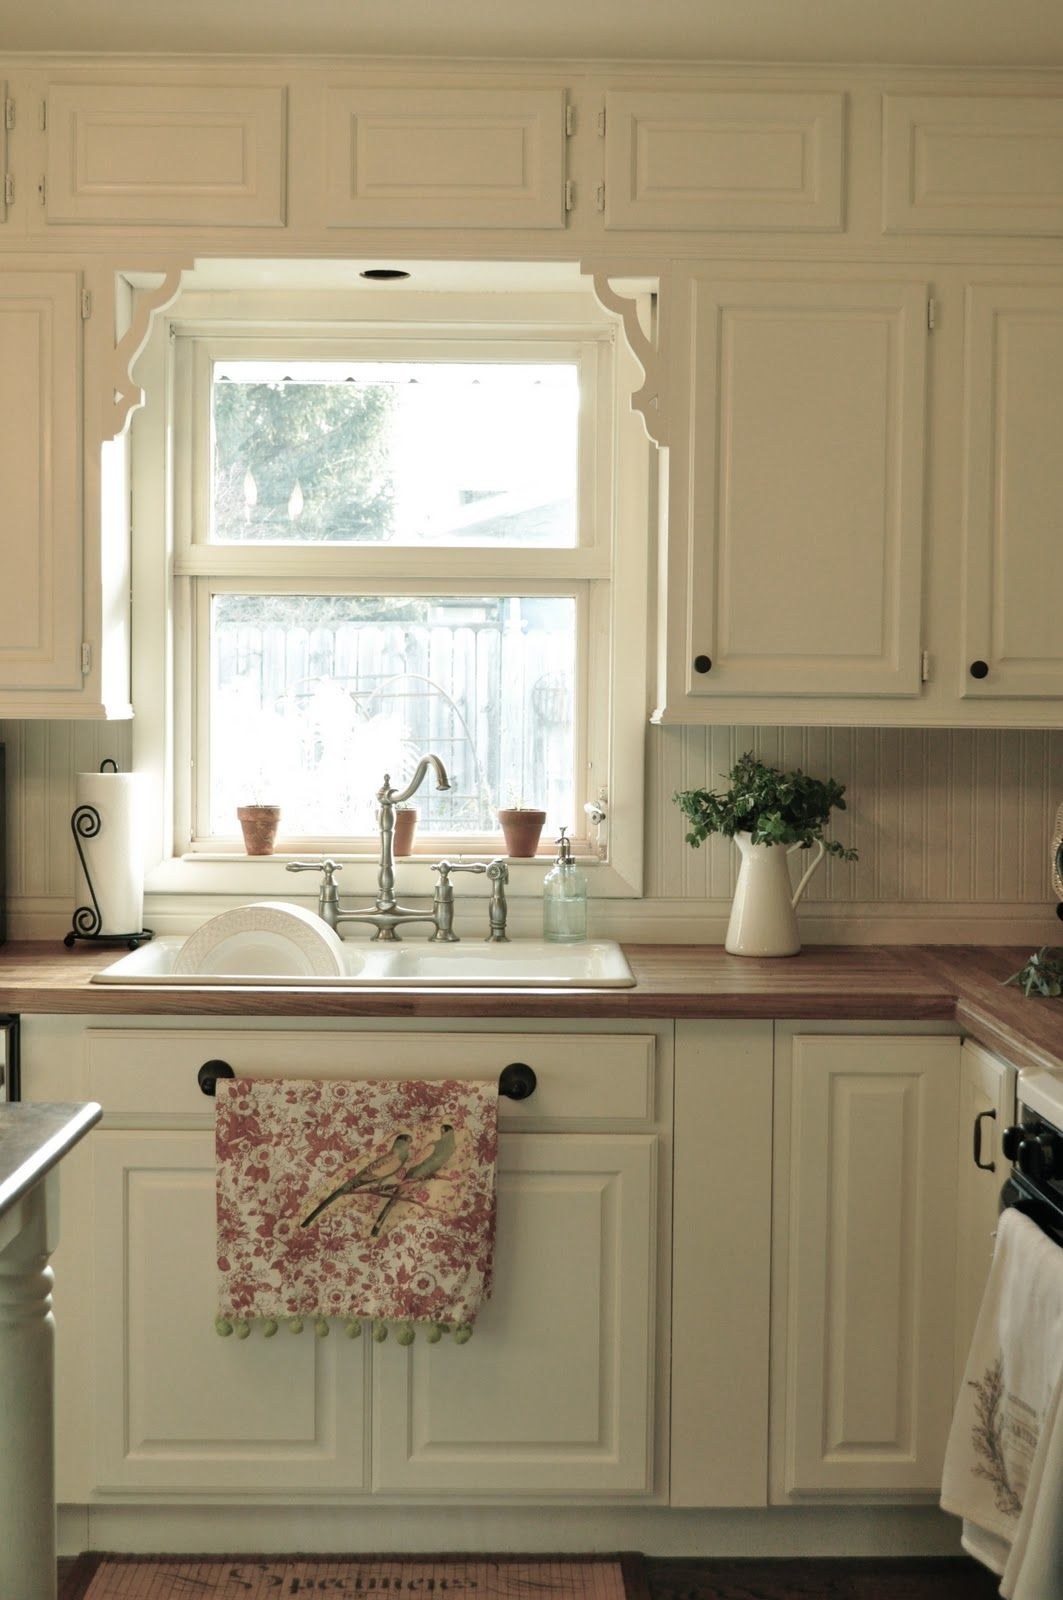 I love the wood countertops and white cabinets kitchen